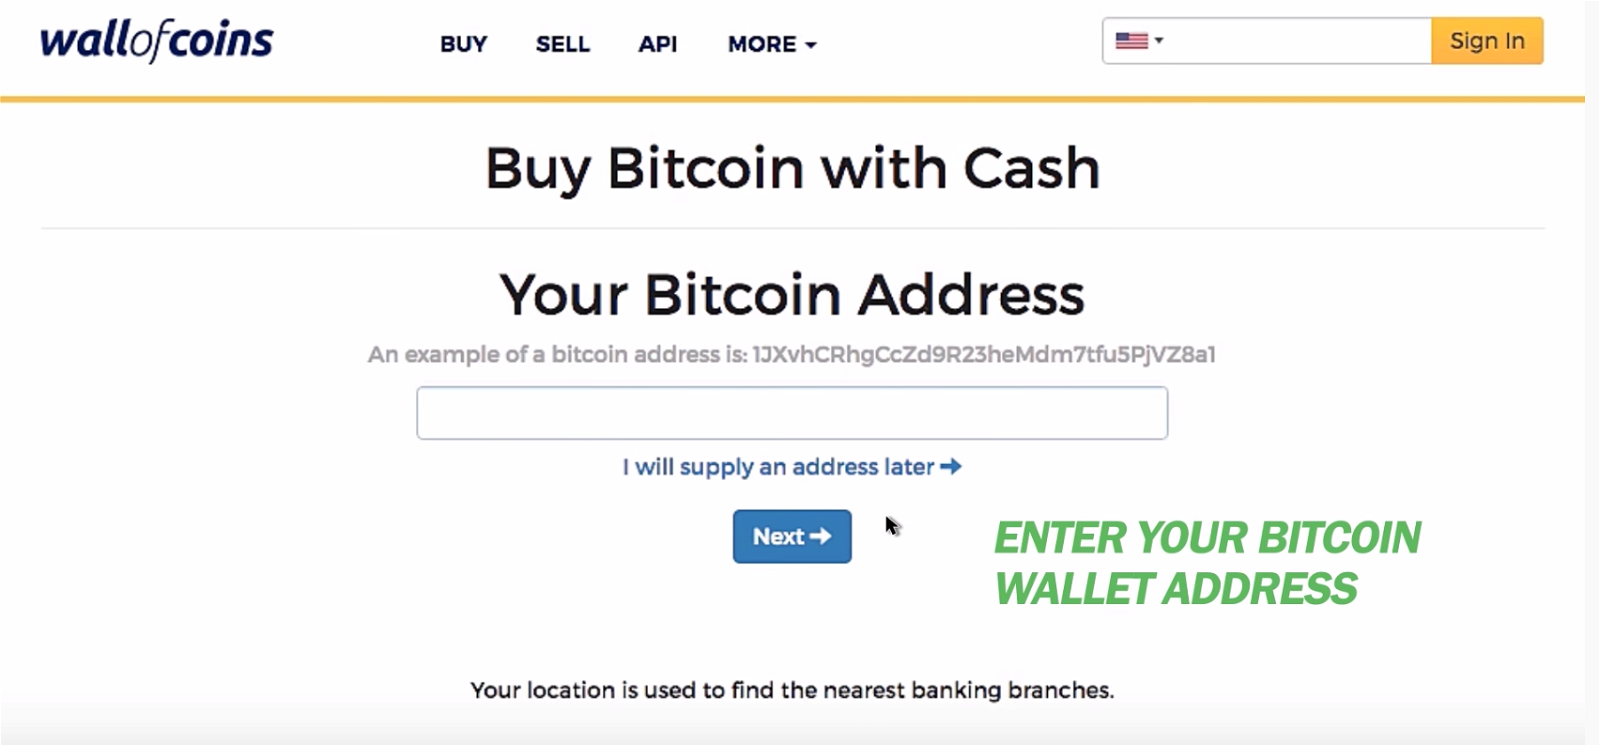 1631490554_608_How-to-Buy-Bitcoin-with-Cash